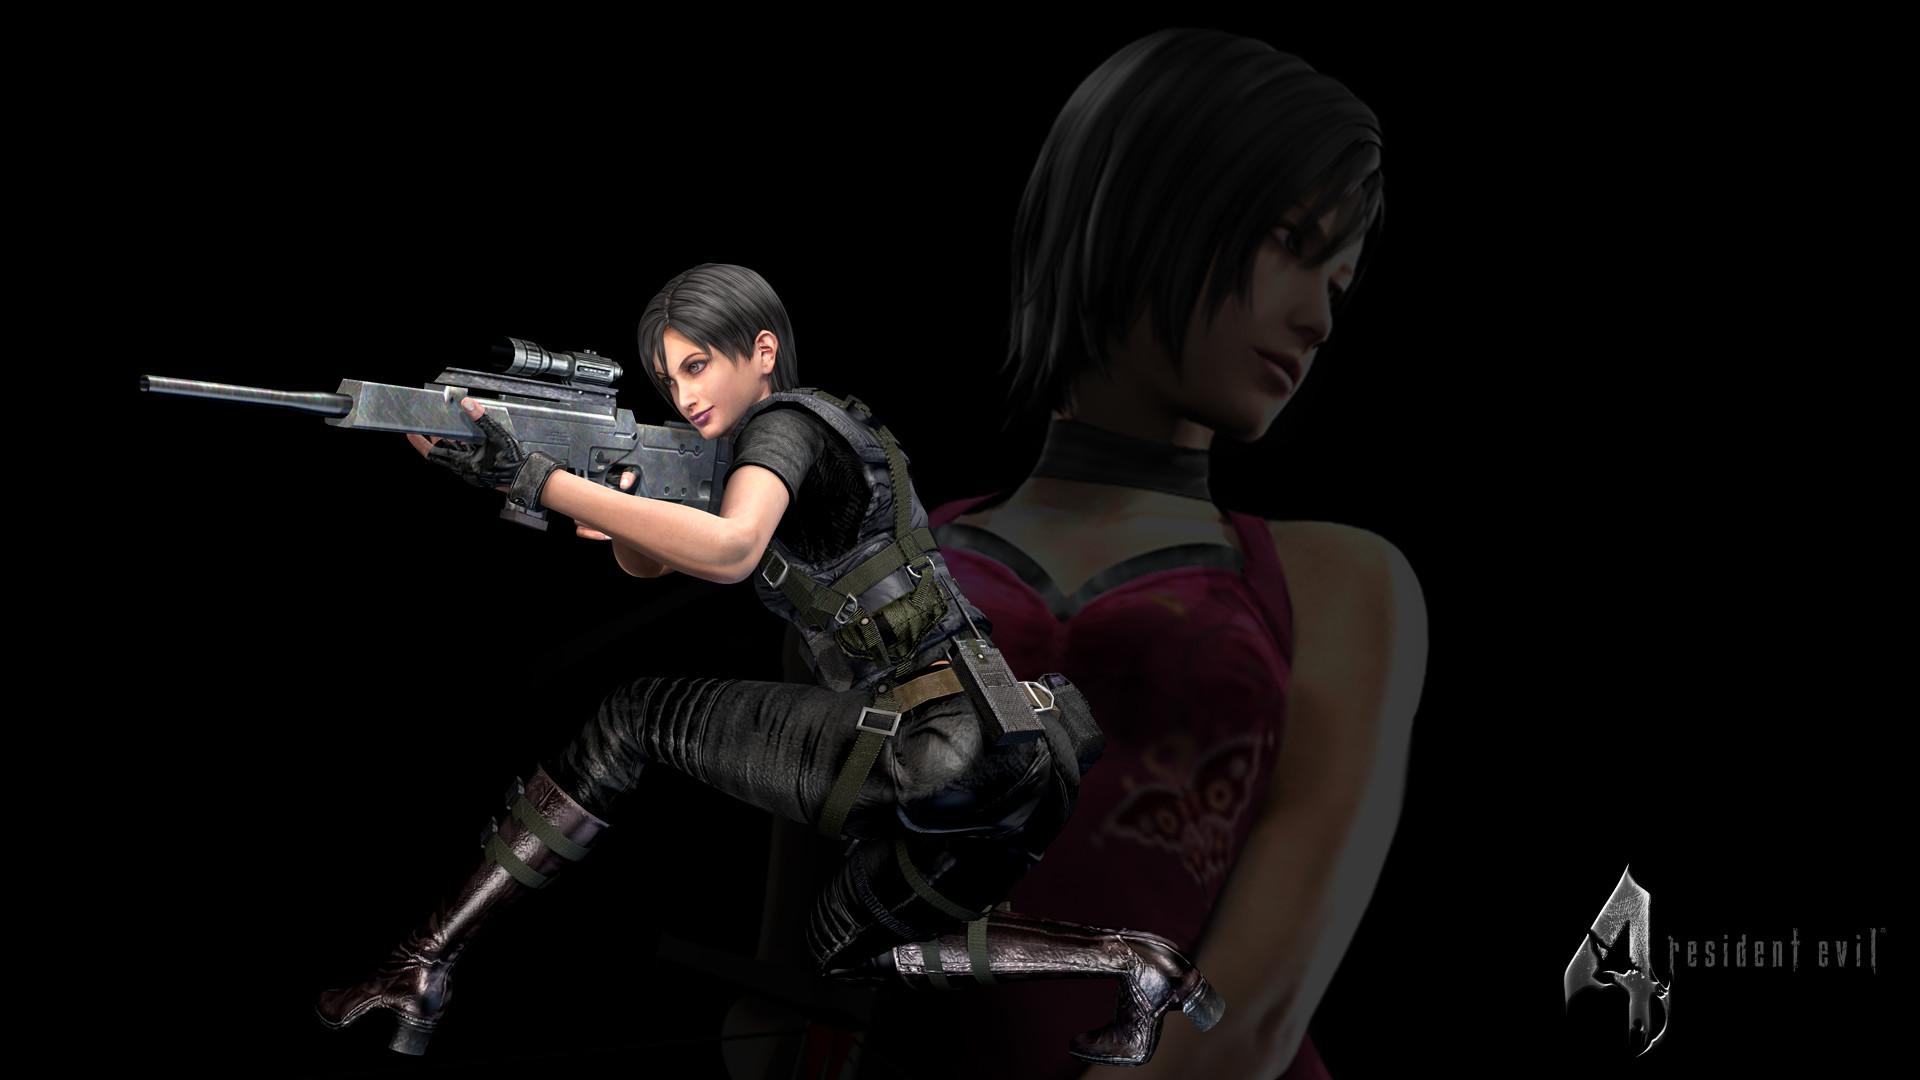 1920x1080 Resident Evil 4 / Biohazard 4 - Ada Wong (RE4) | Steam Trading Cards Wiki |  FANDOM powered by Wikia